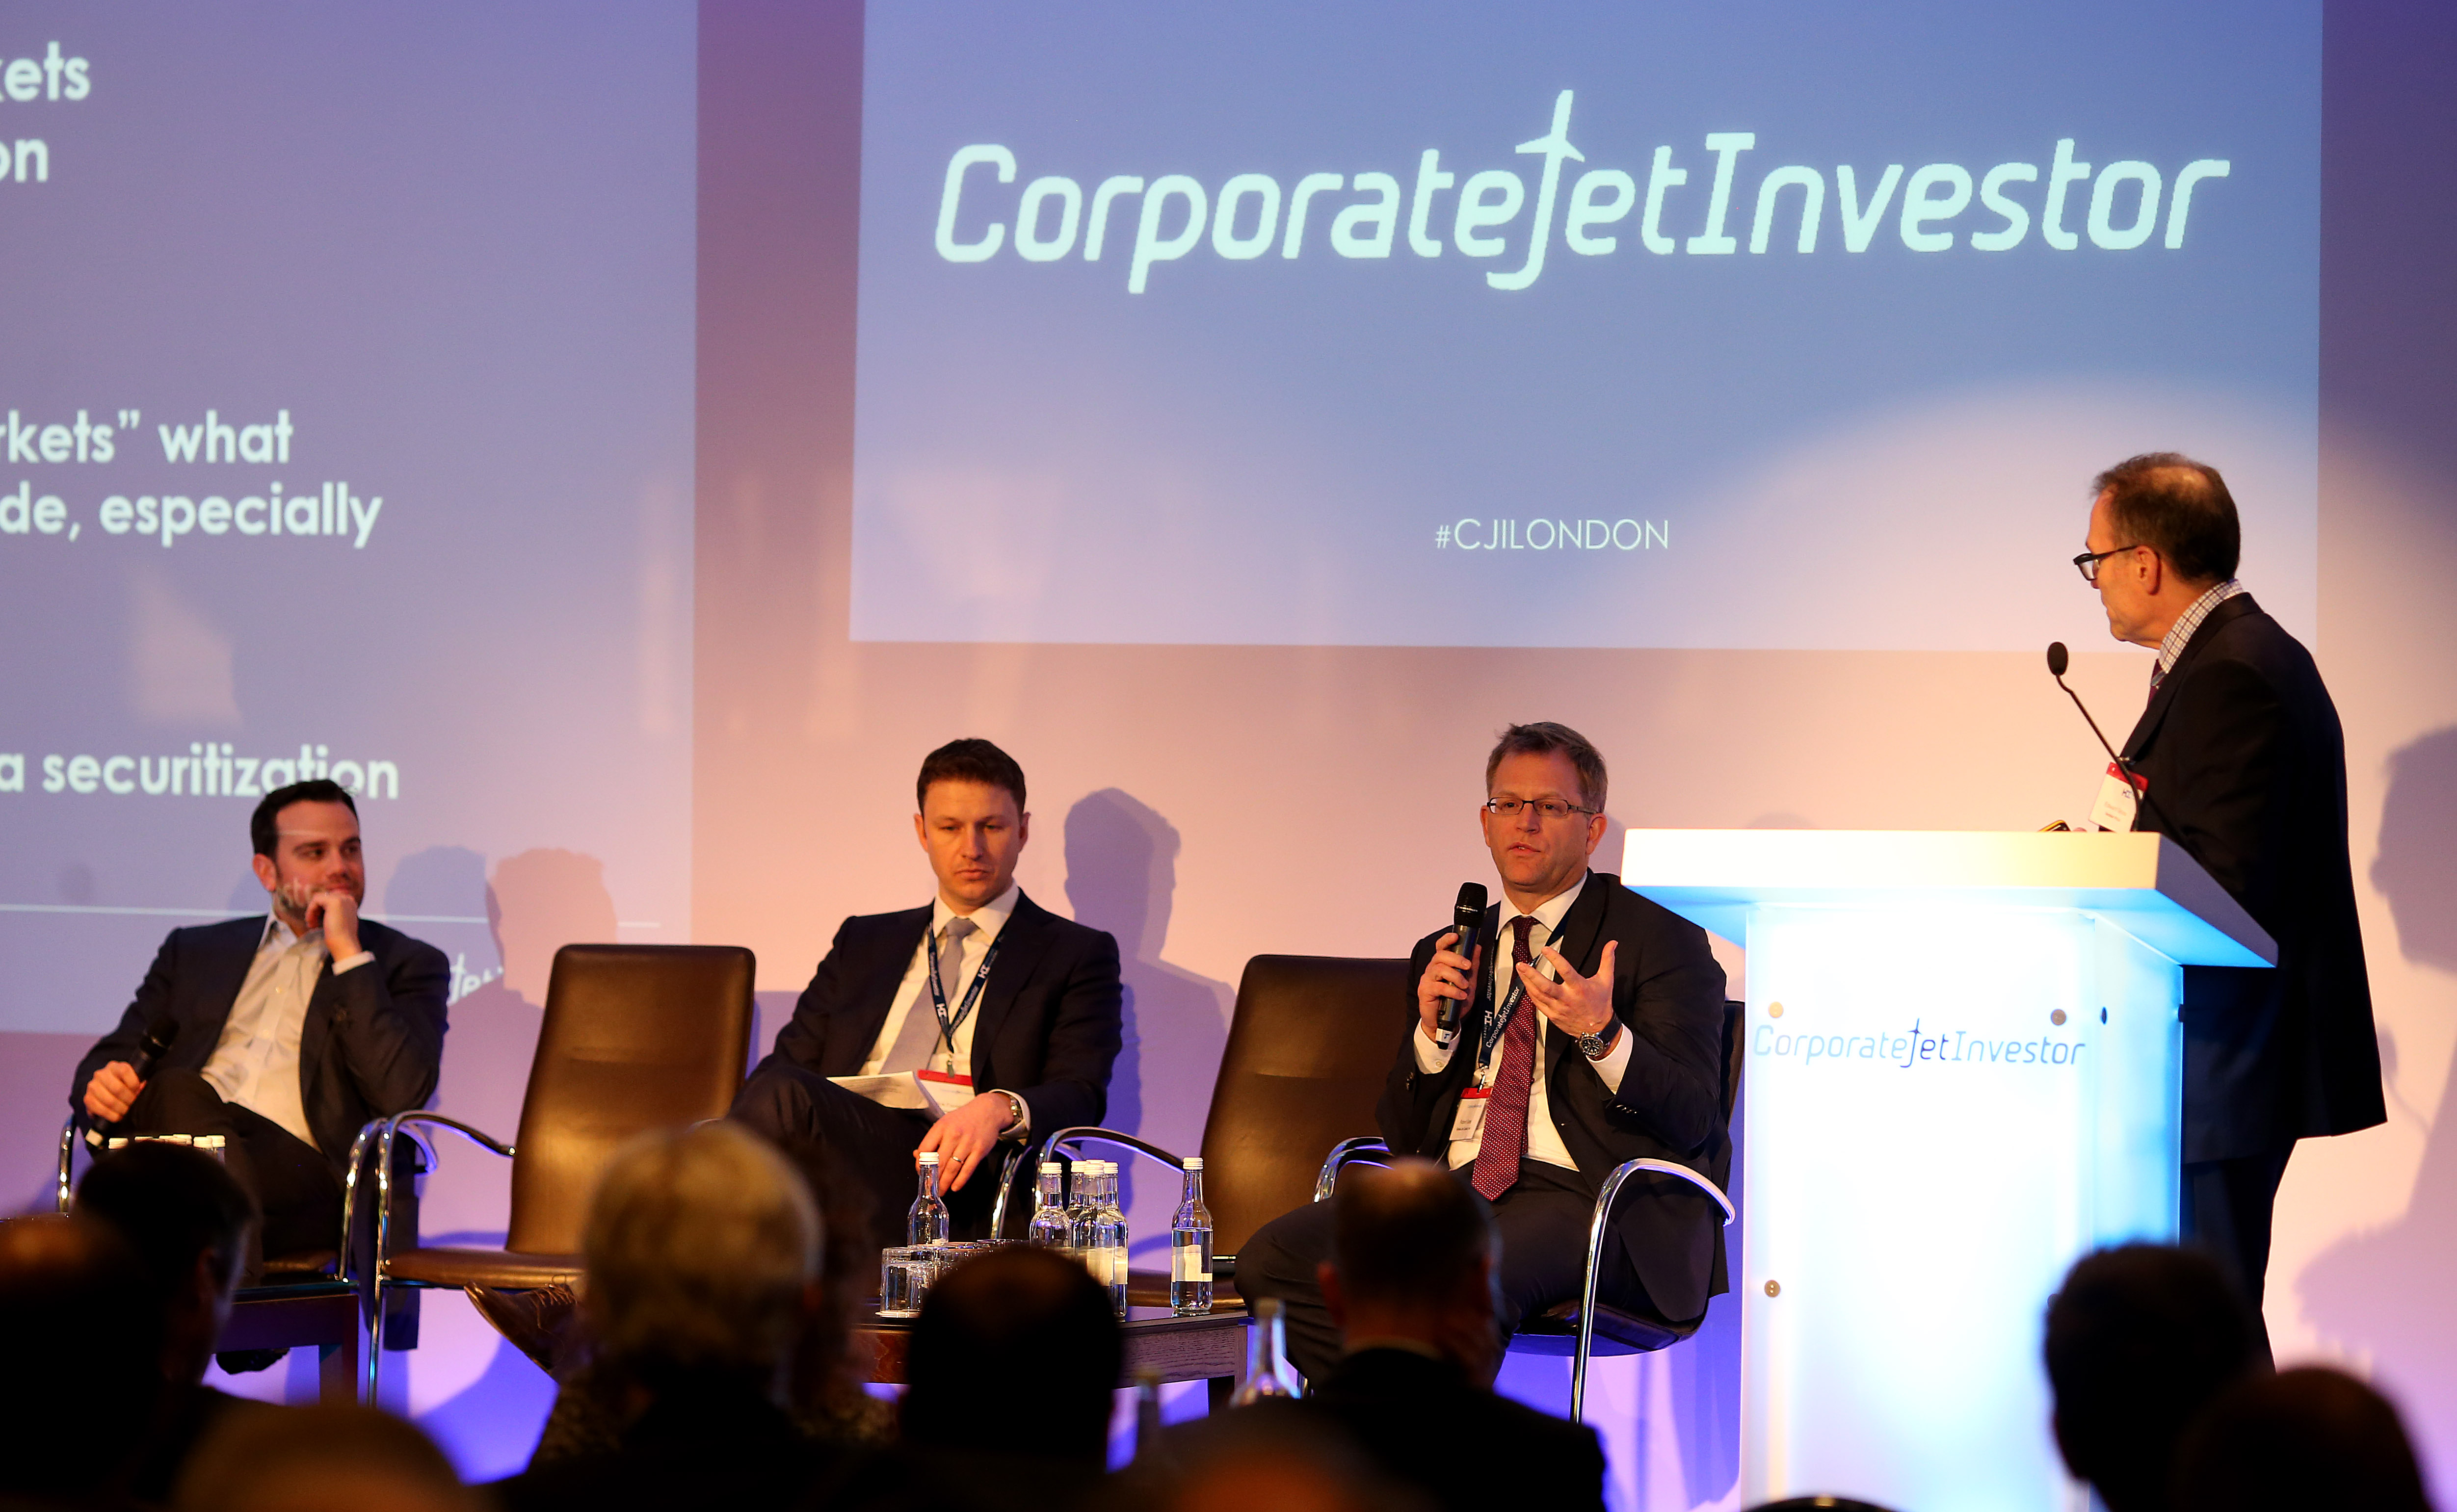 global jet capital's robert gates speaking at corporate jet investor 2016 conference in london